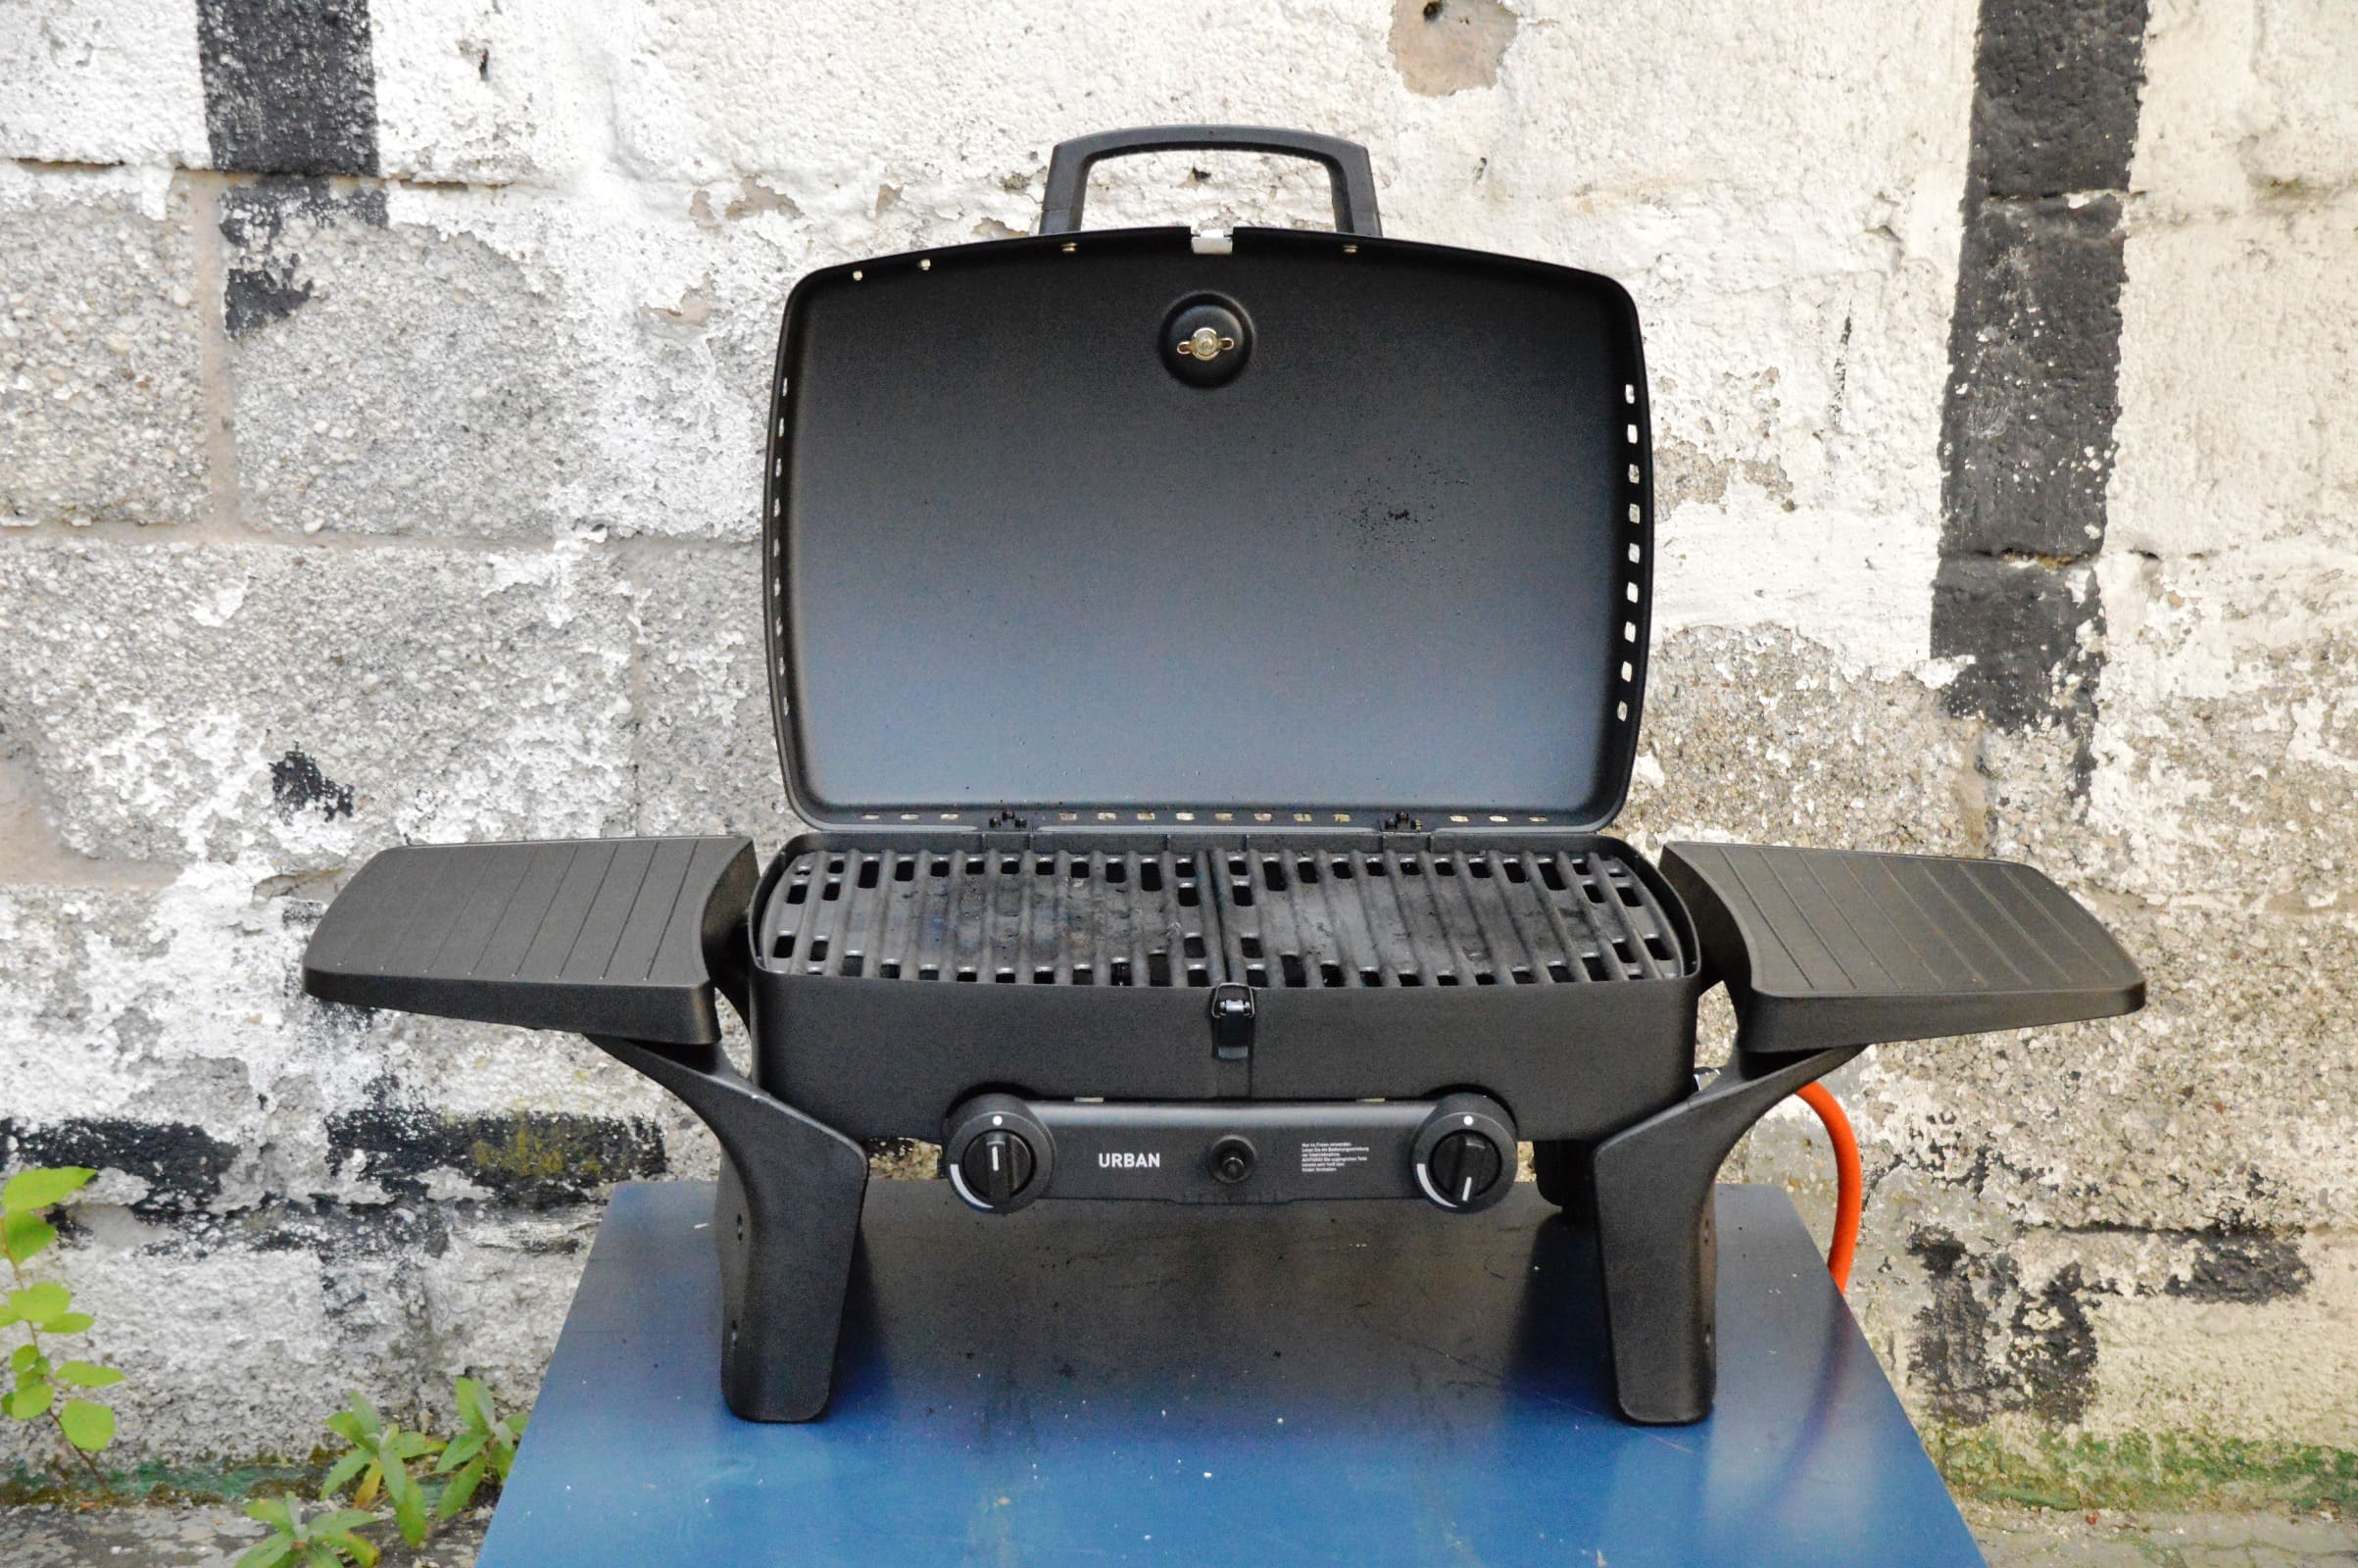 Weber Gasgrill Q1200 Test : Angegrillt: enders urban im test bacon zum steak